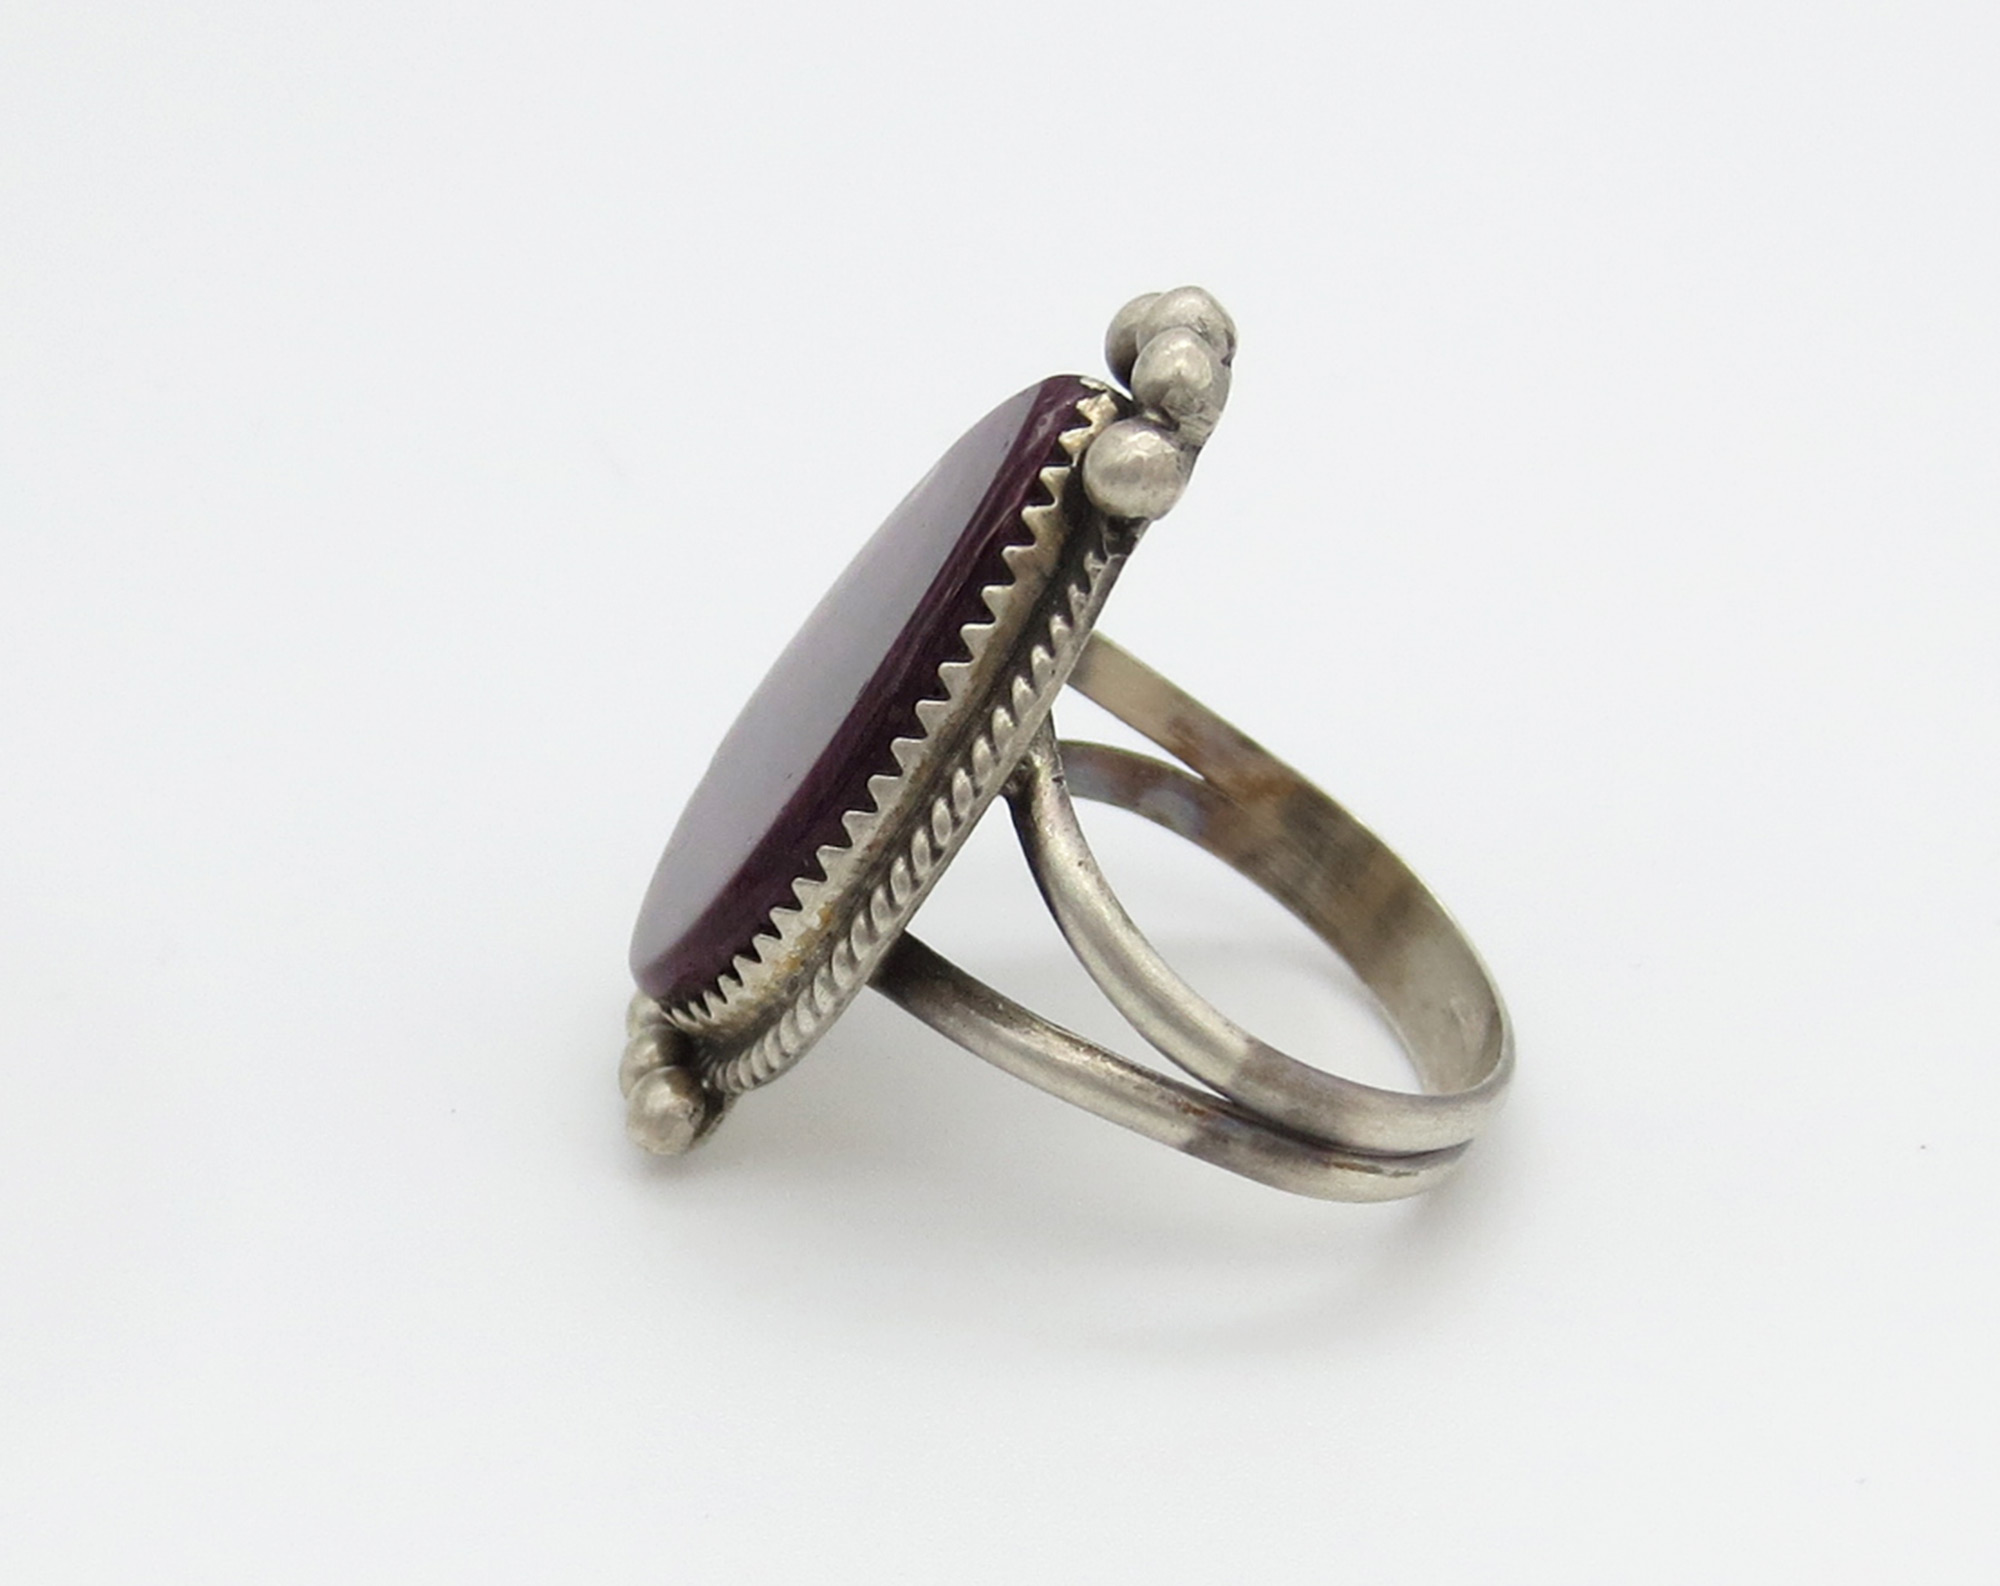 Image 1 of Deep Purple Spiny Oyster & Sterling Silver Ring Size 9.5 - 6245rio